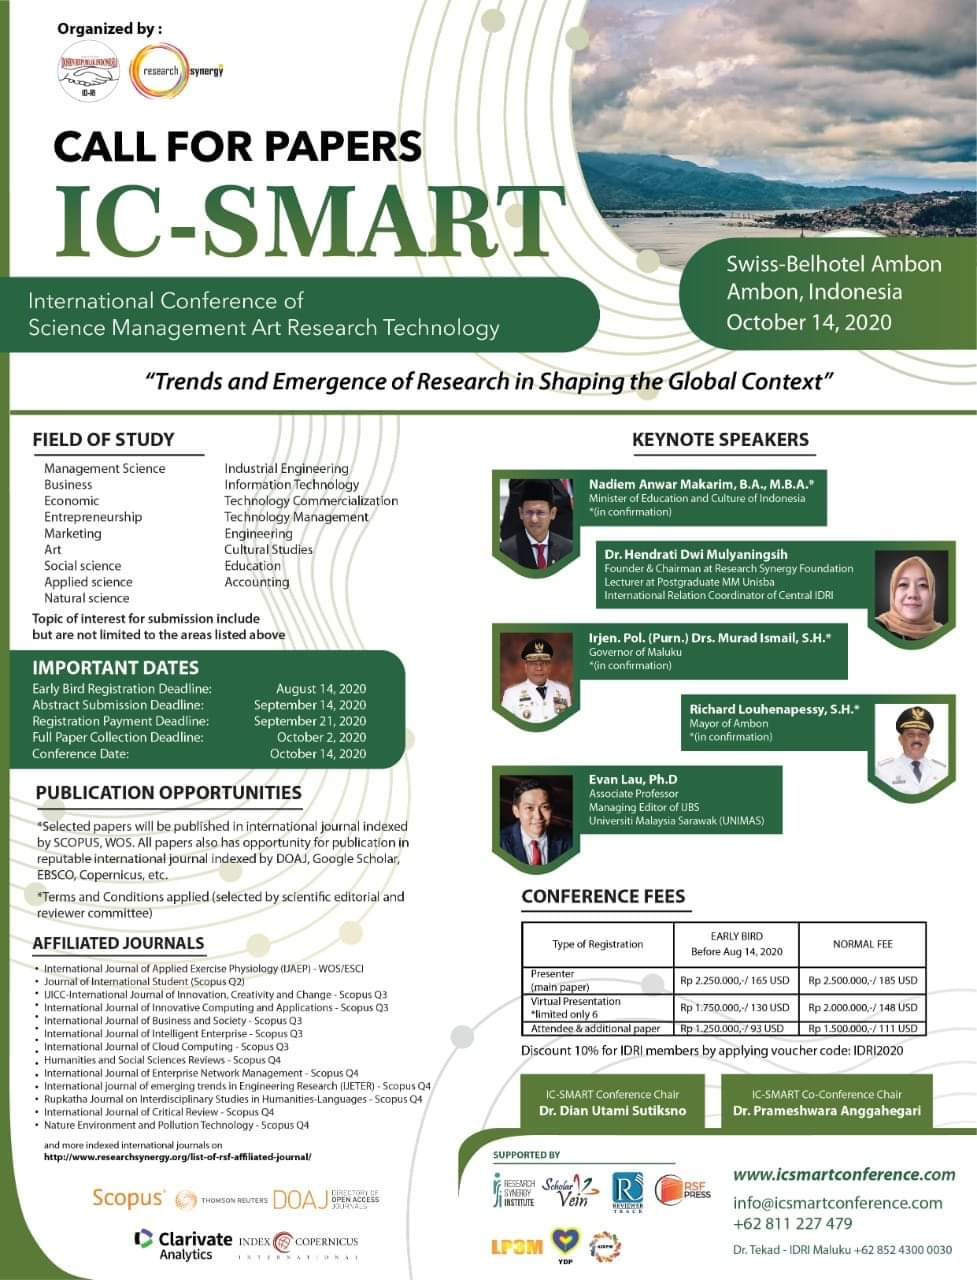 International Conference of Science Management Art Research Technology (IC-SMART)